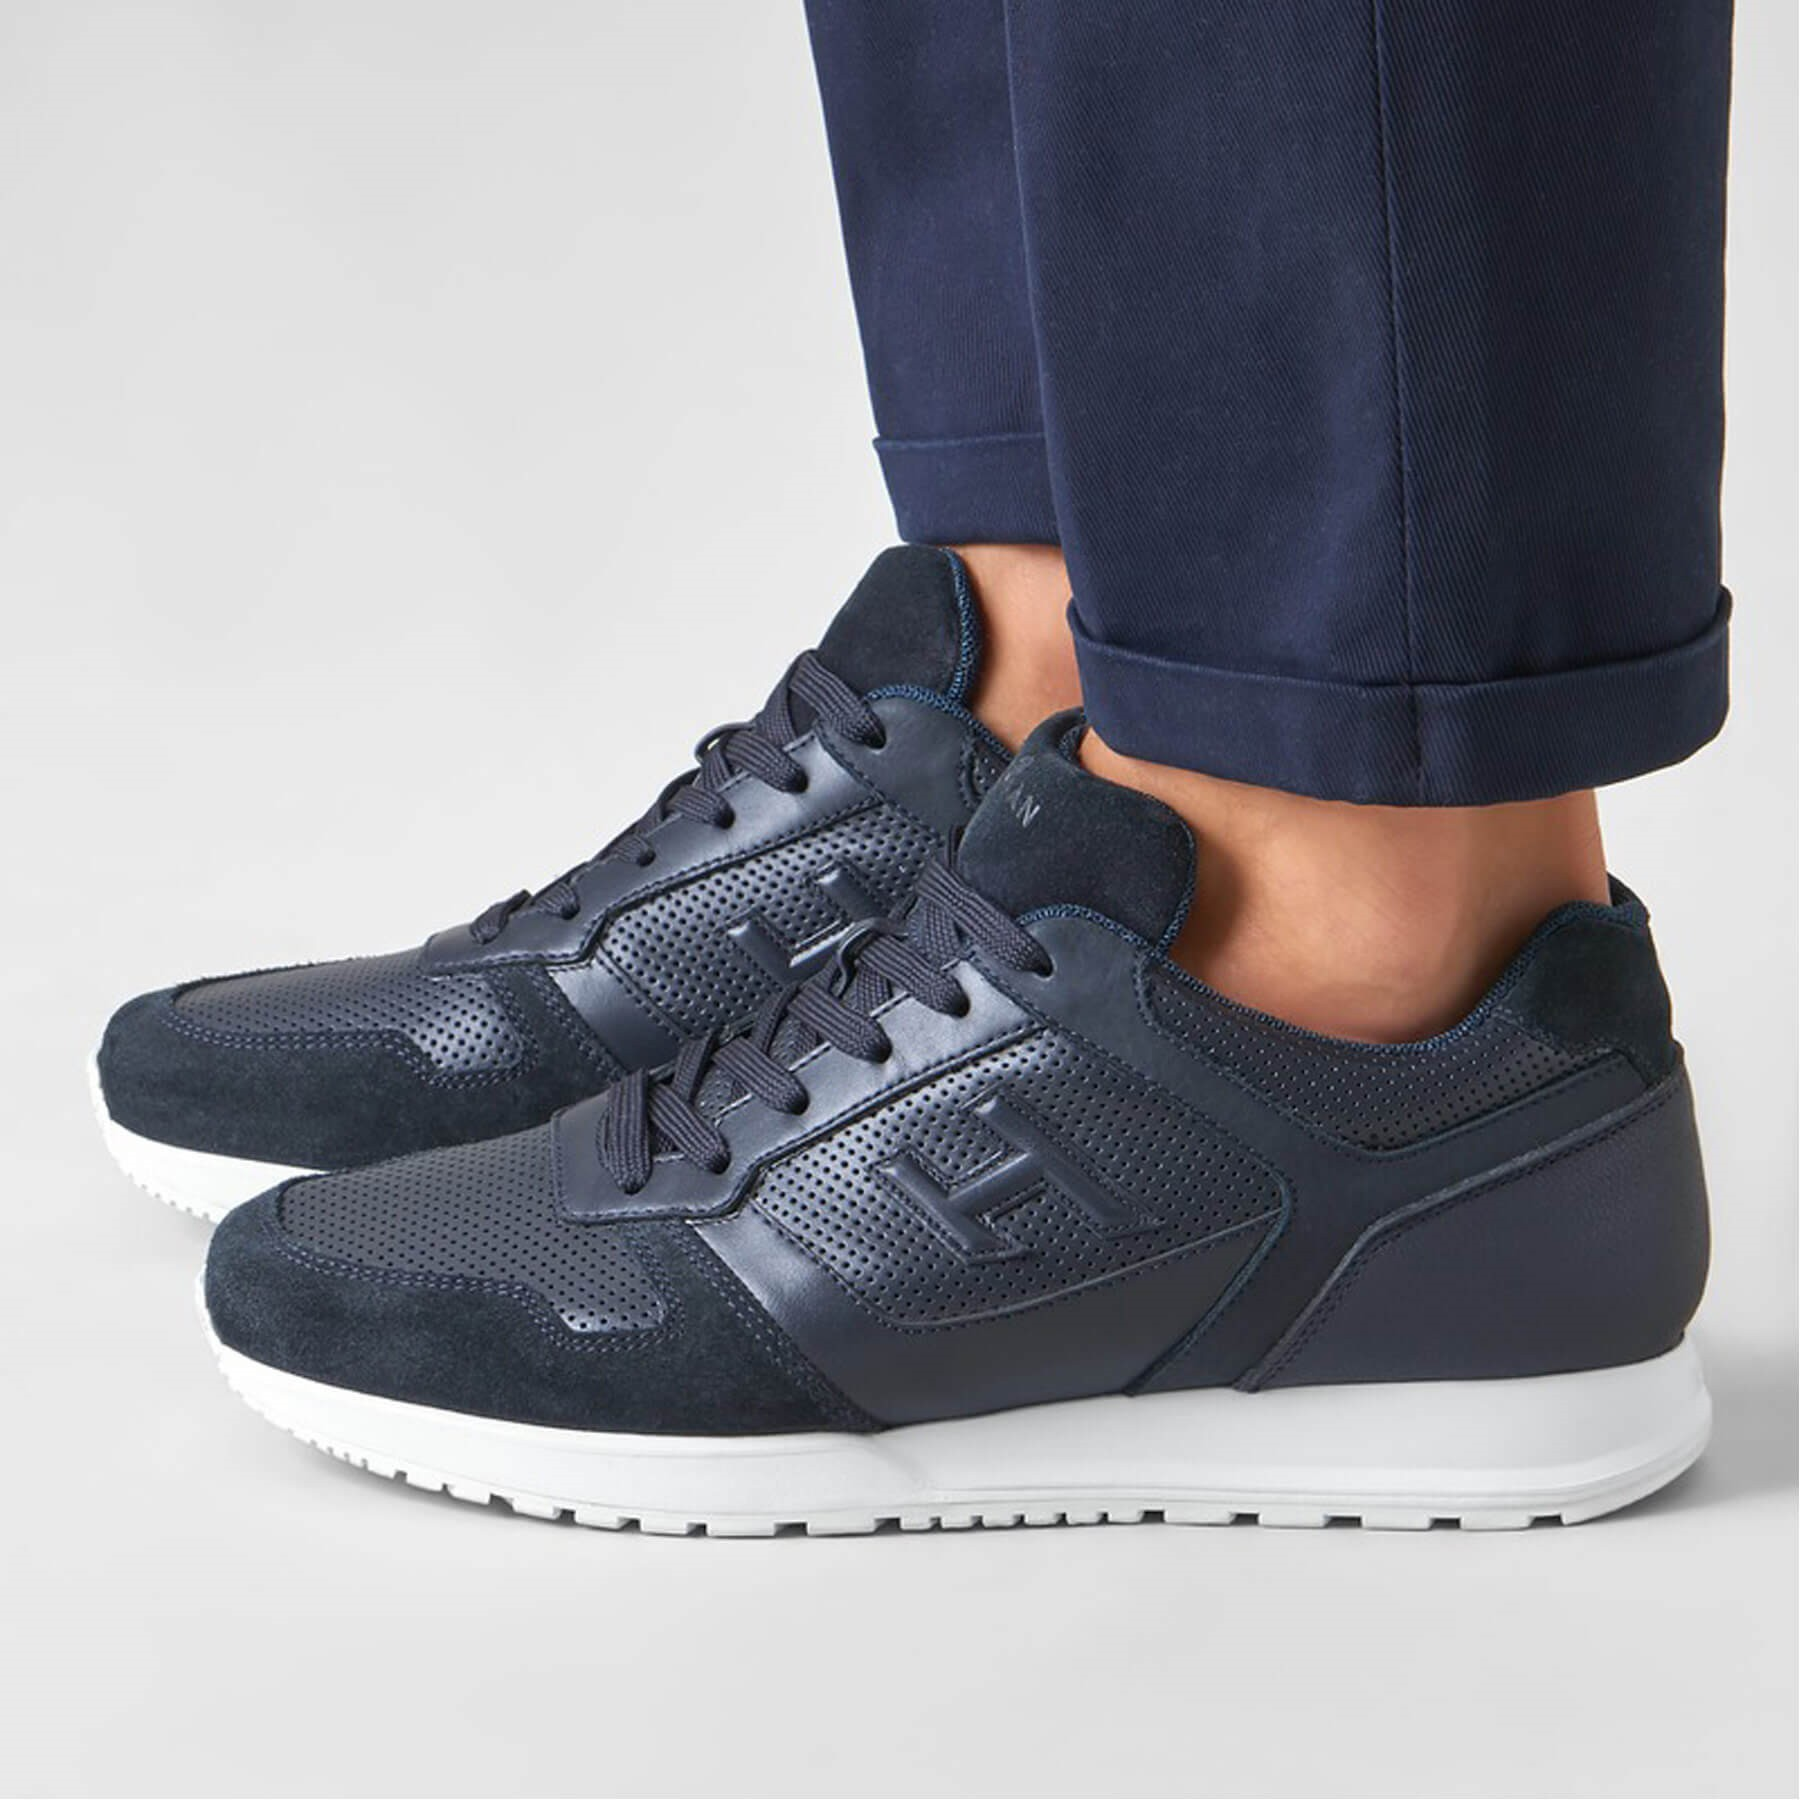 Sneakers homme hogan